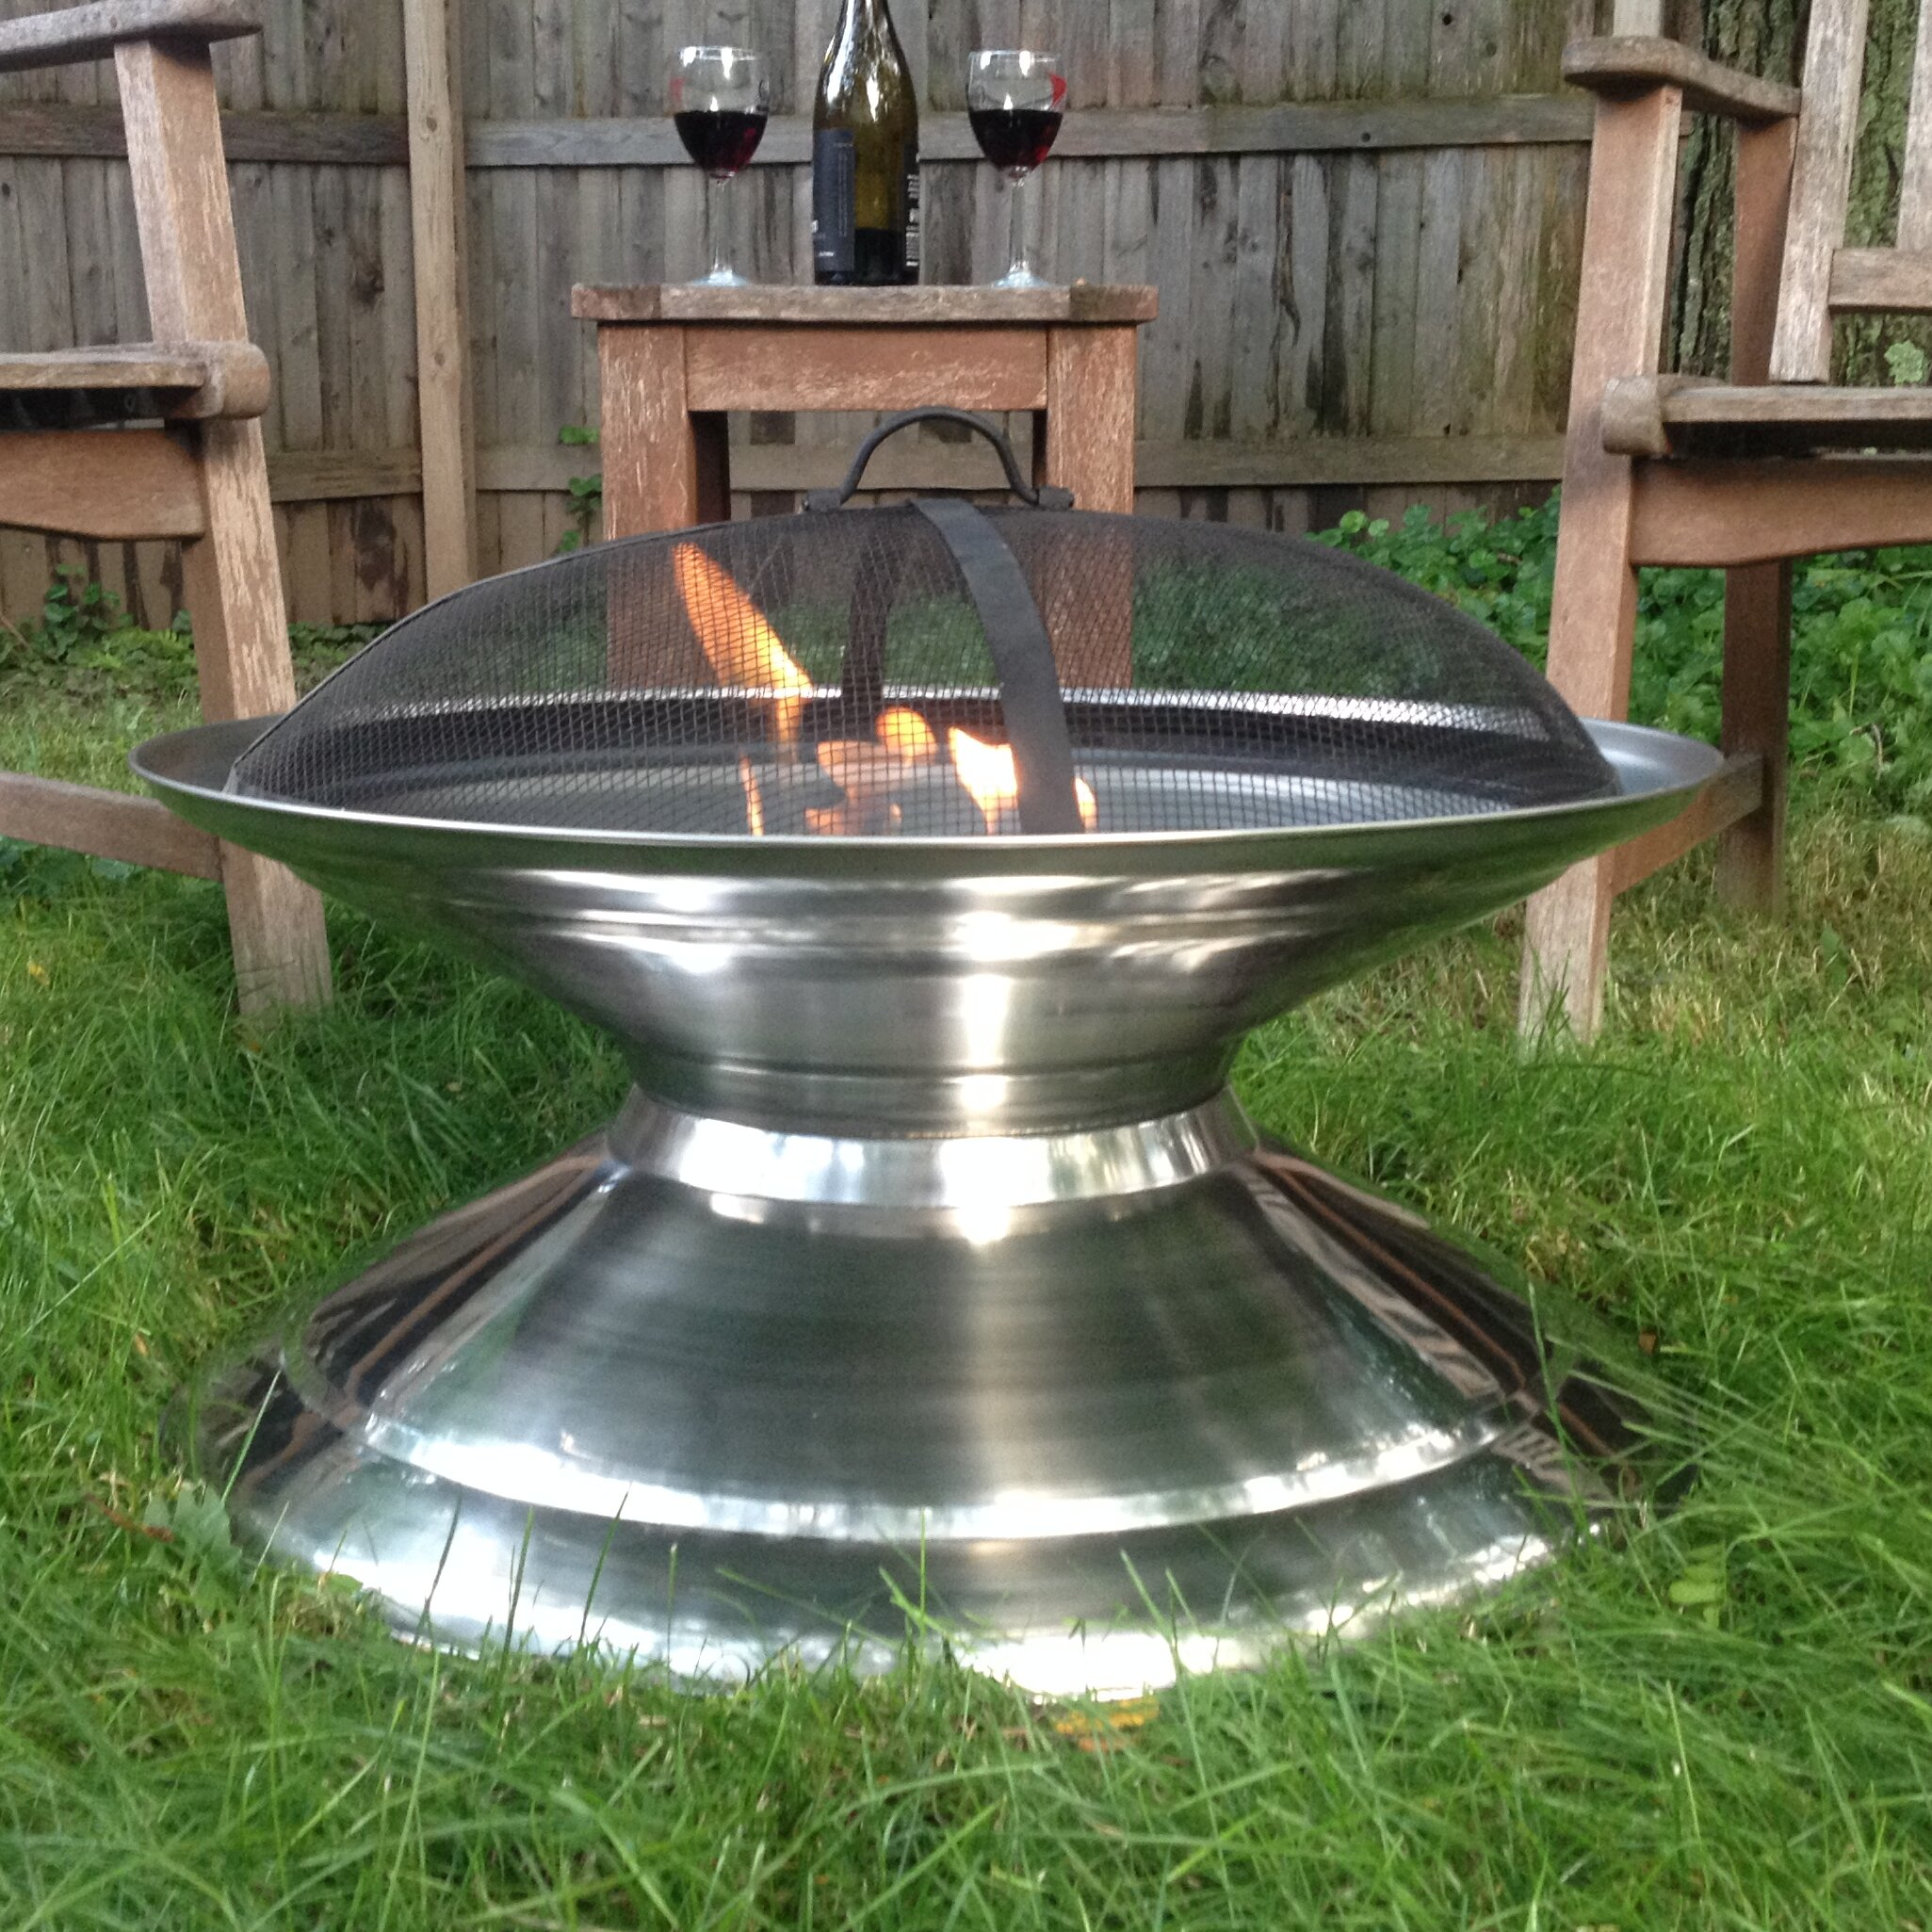 Pomegranate Solutions Stainless Steel Outdoor Fire Pit | Wayfair.ca